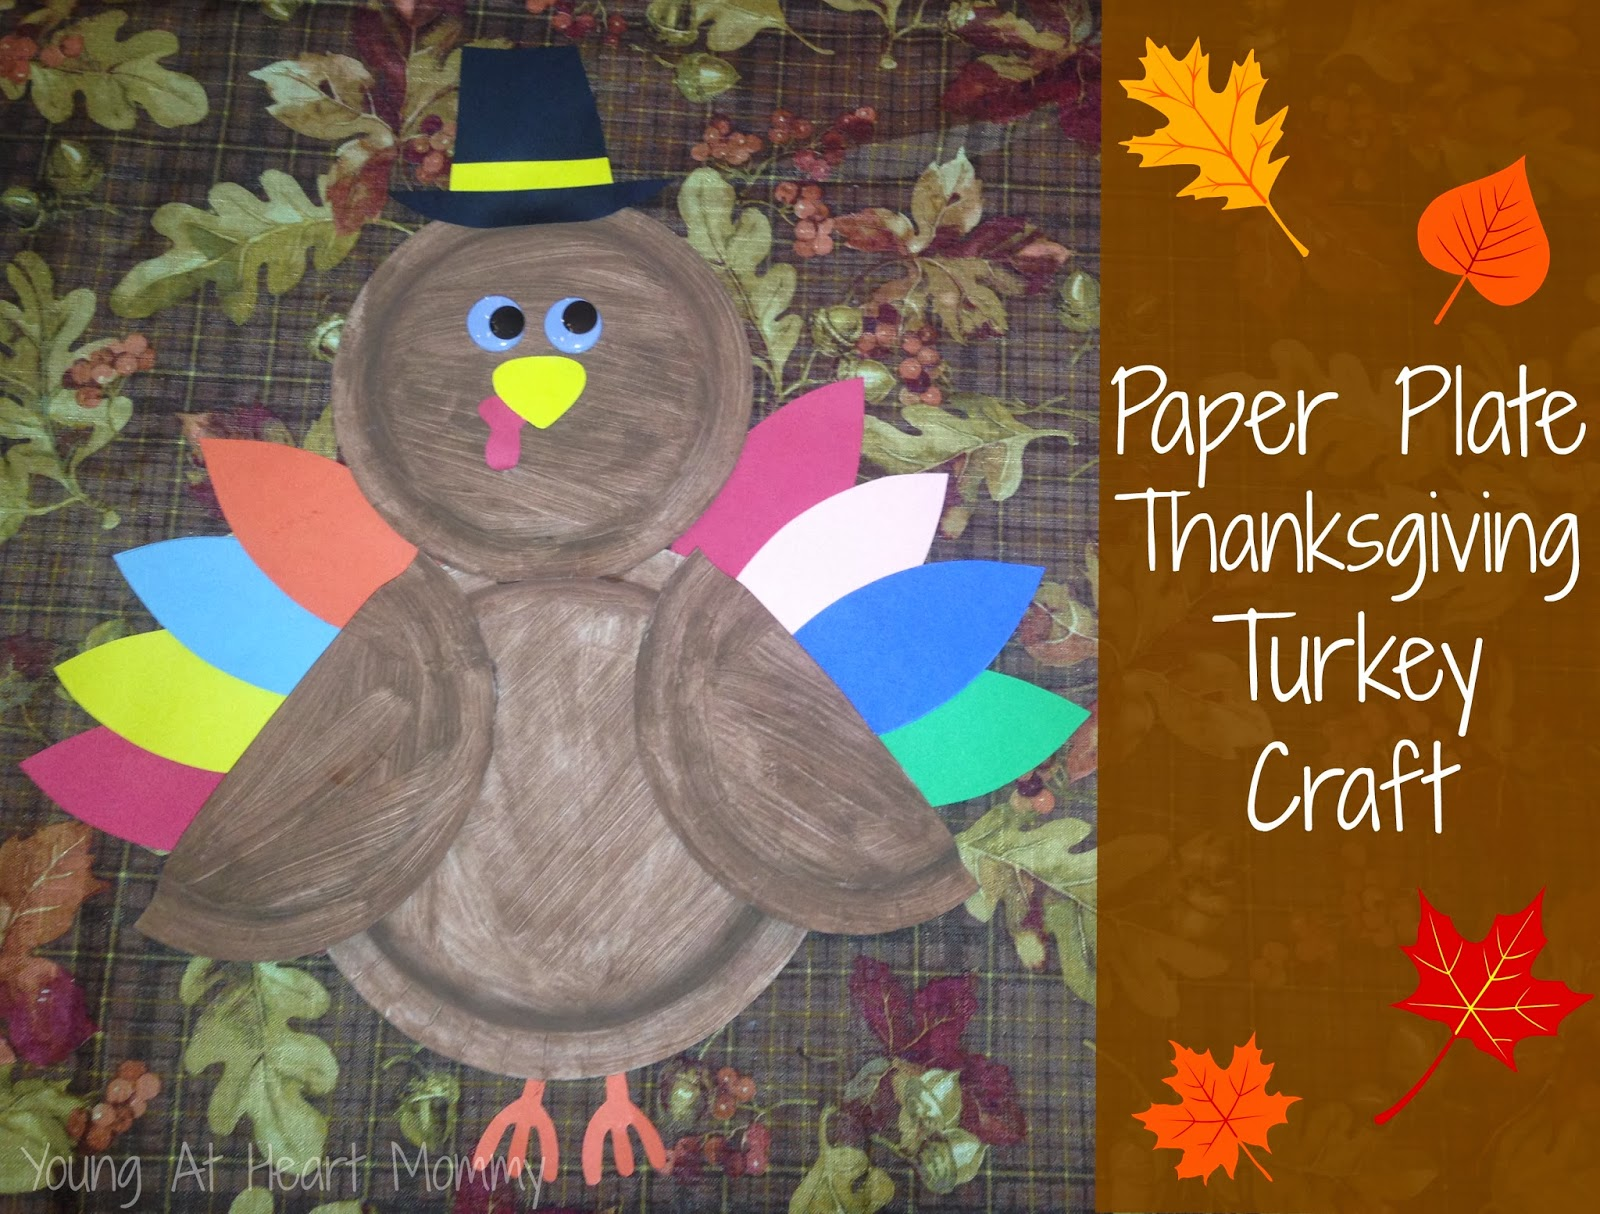 & Paper Plate Thanksgiving Turkey Craft - Young At Heart Mommy